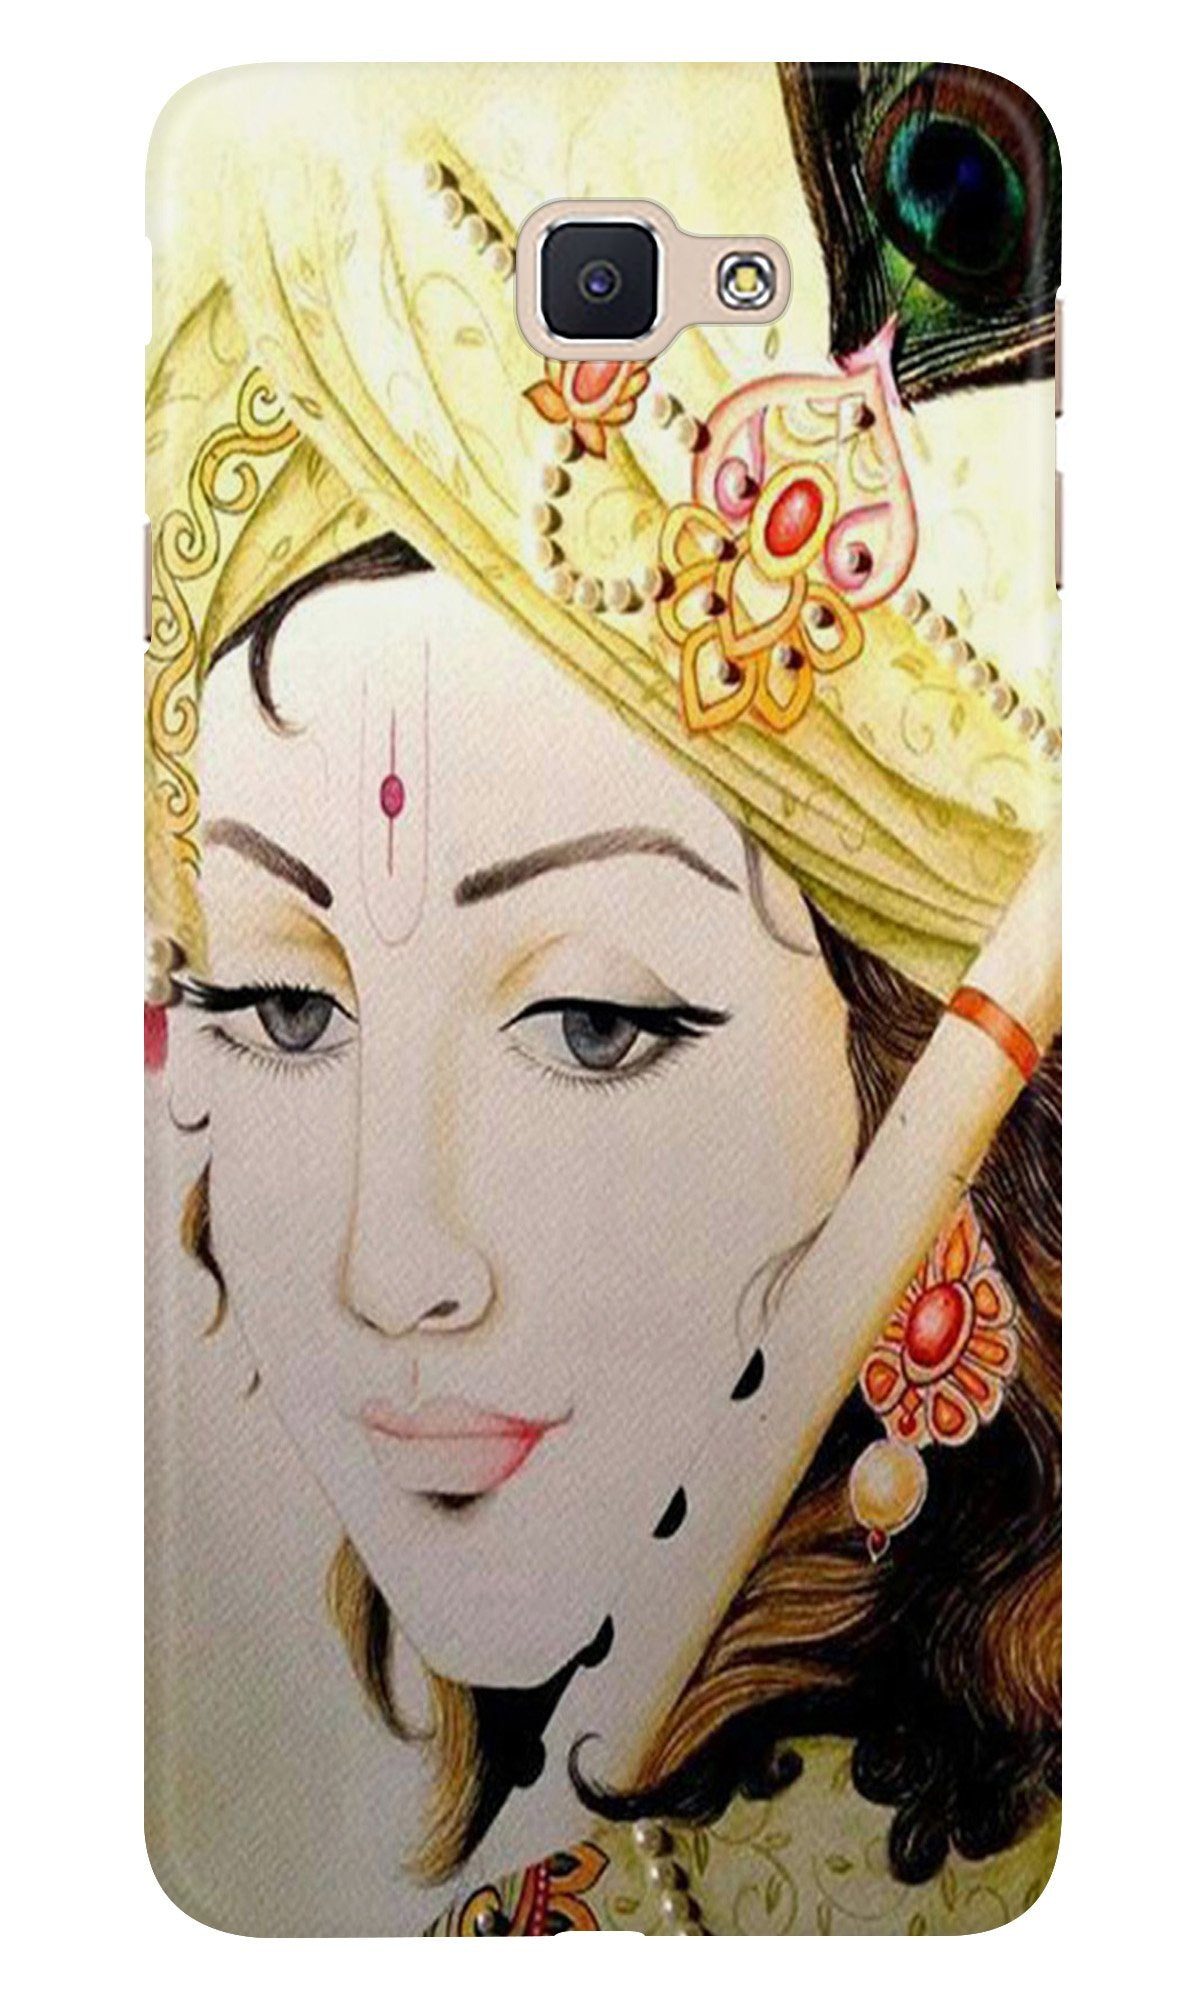 Krishna Case for Samsung Galaxy C7 Pro (Design No. 291)